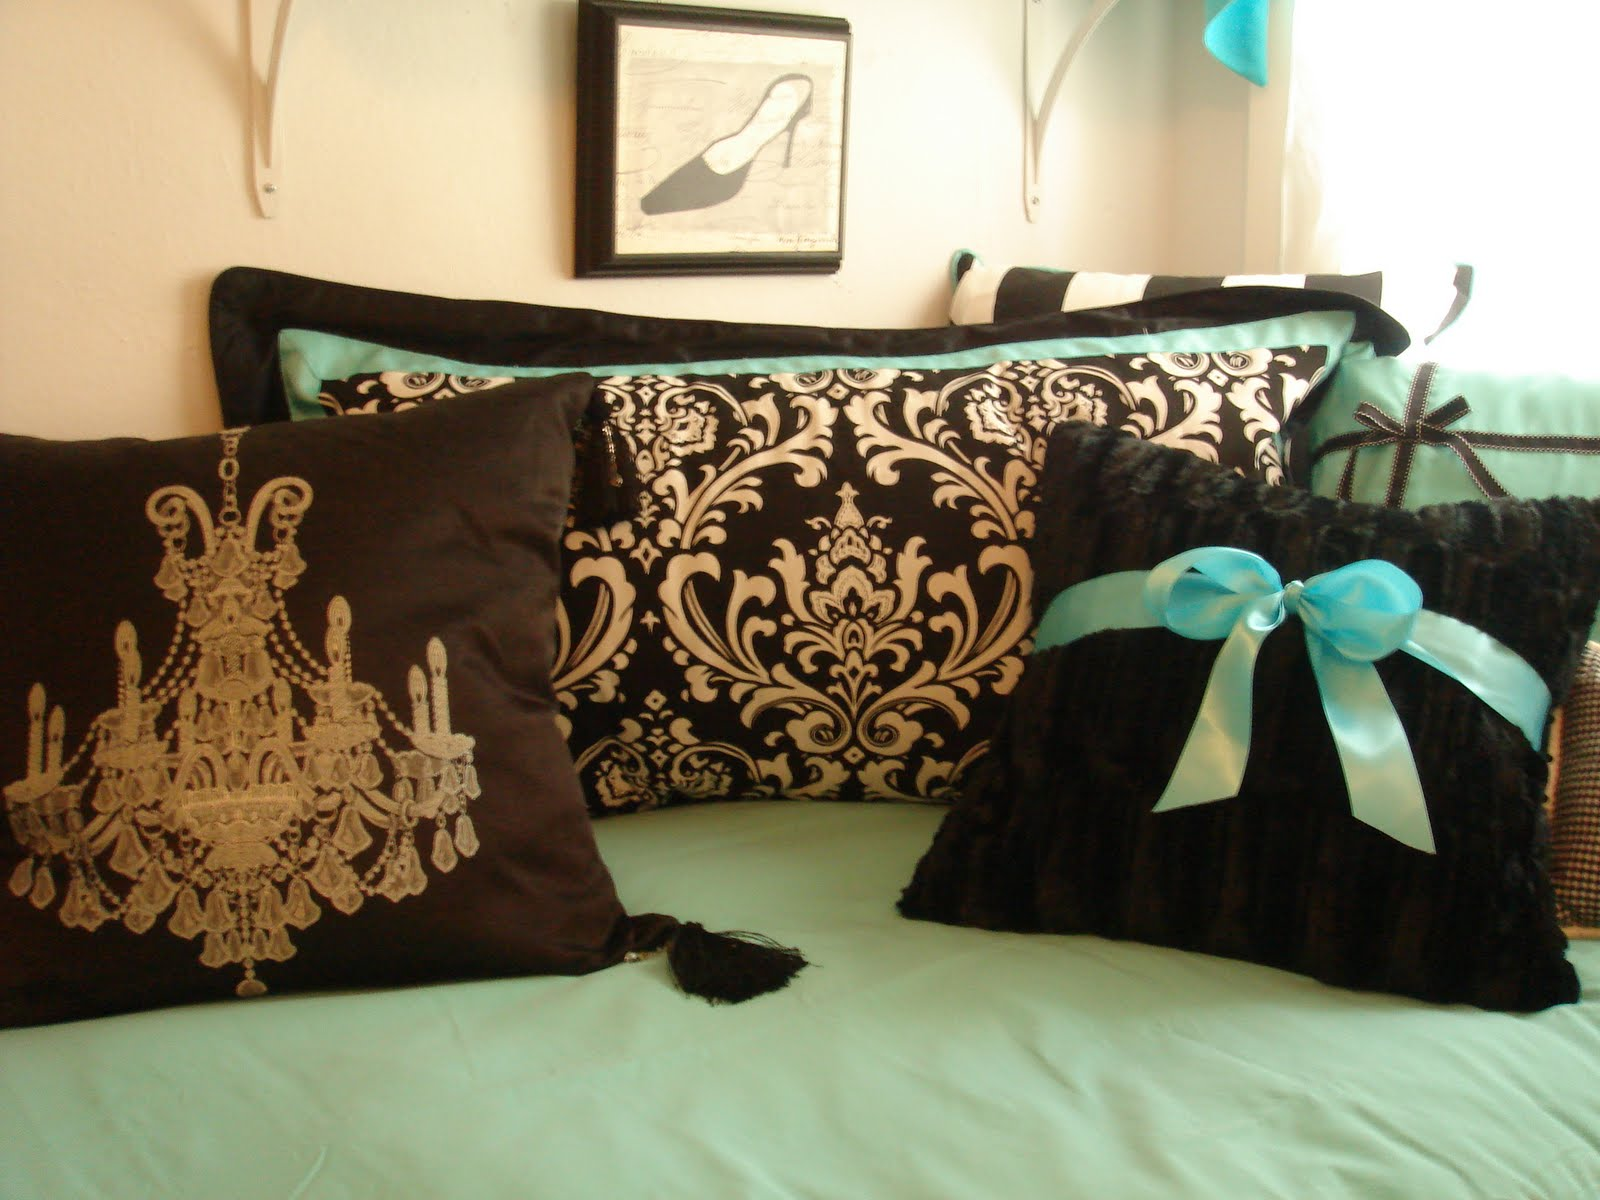 Decor 2 Ur Door: Tiffany Style Bedding - Dorm Room Bedding ...